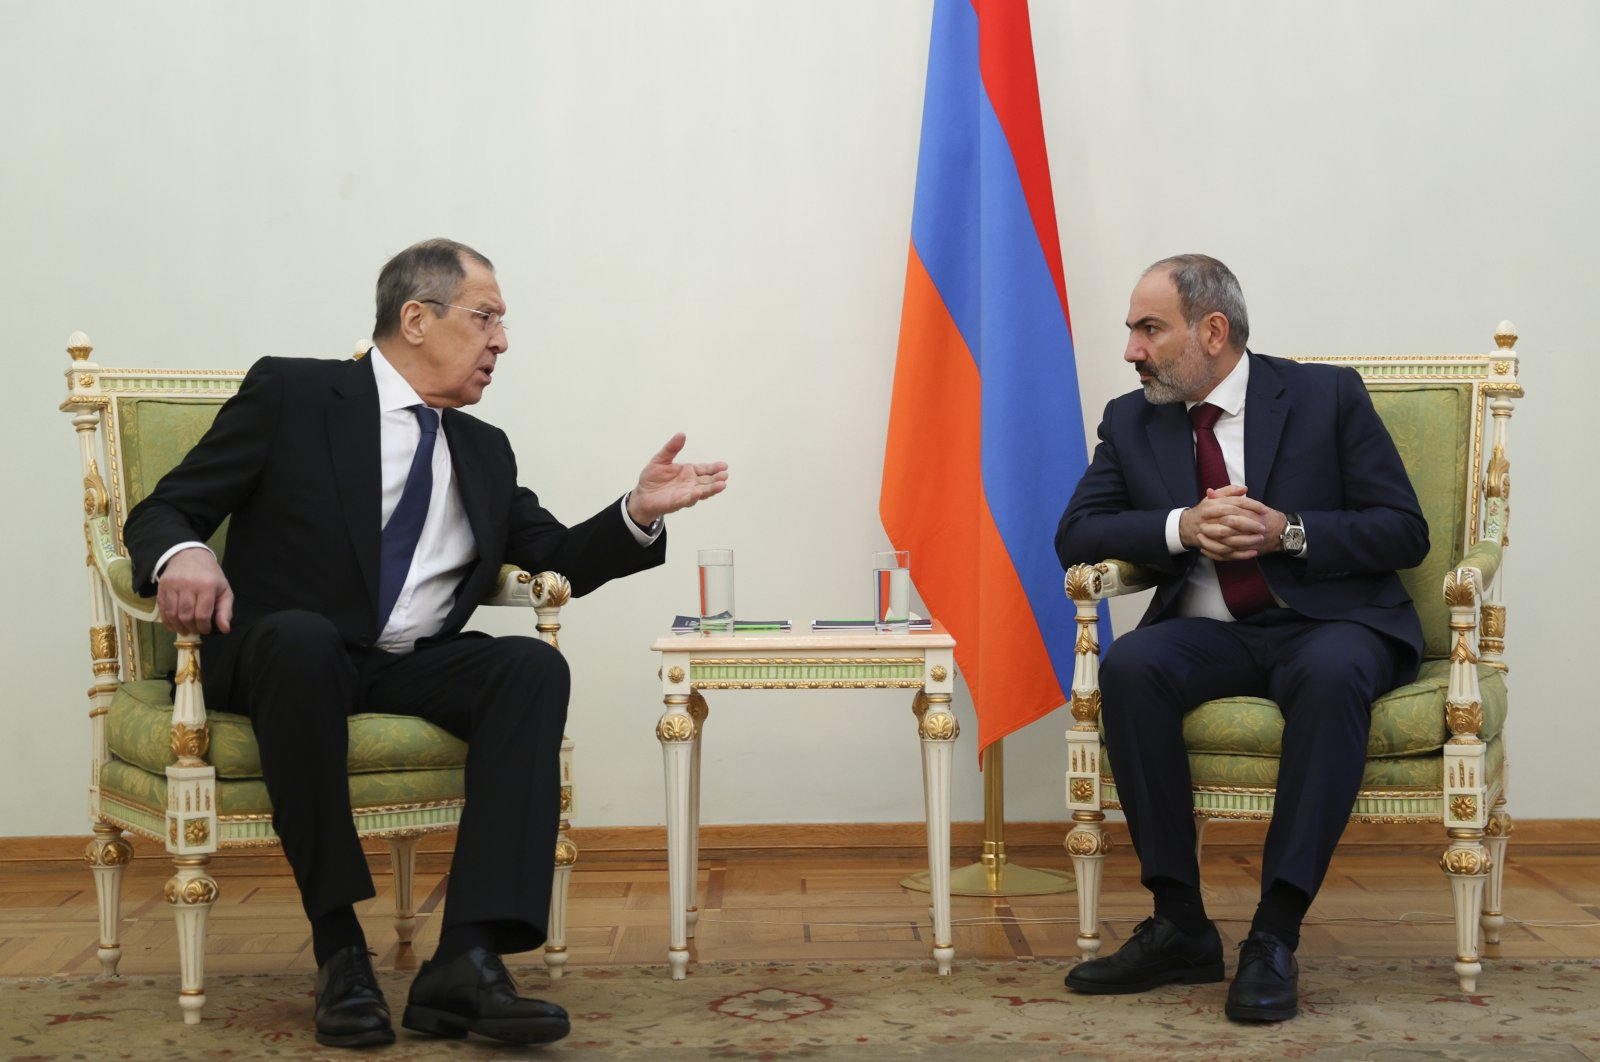 In this photo released by the Russian Foreign Ministry Press Service, Russian Foreign Minister Sergey Lavrov, left, gestures while speaking to Armenia's Prime Minister Nikol Pashinian during their meeting in Yerevan, Armenia, Saturday, Nov. 21, 2020. (AP Photo)